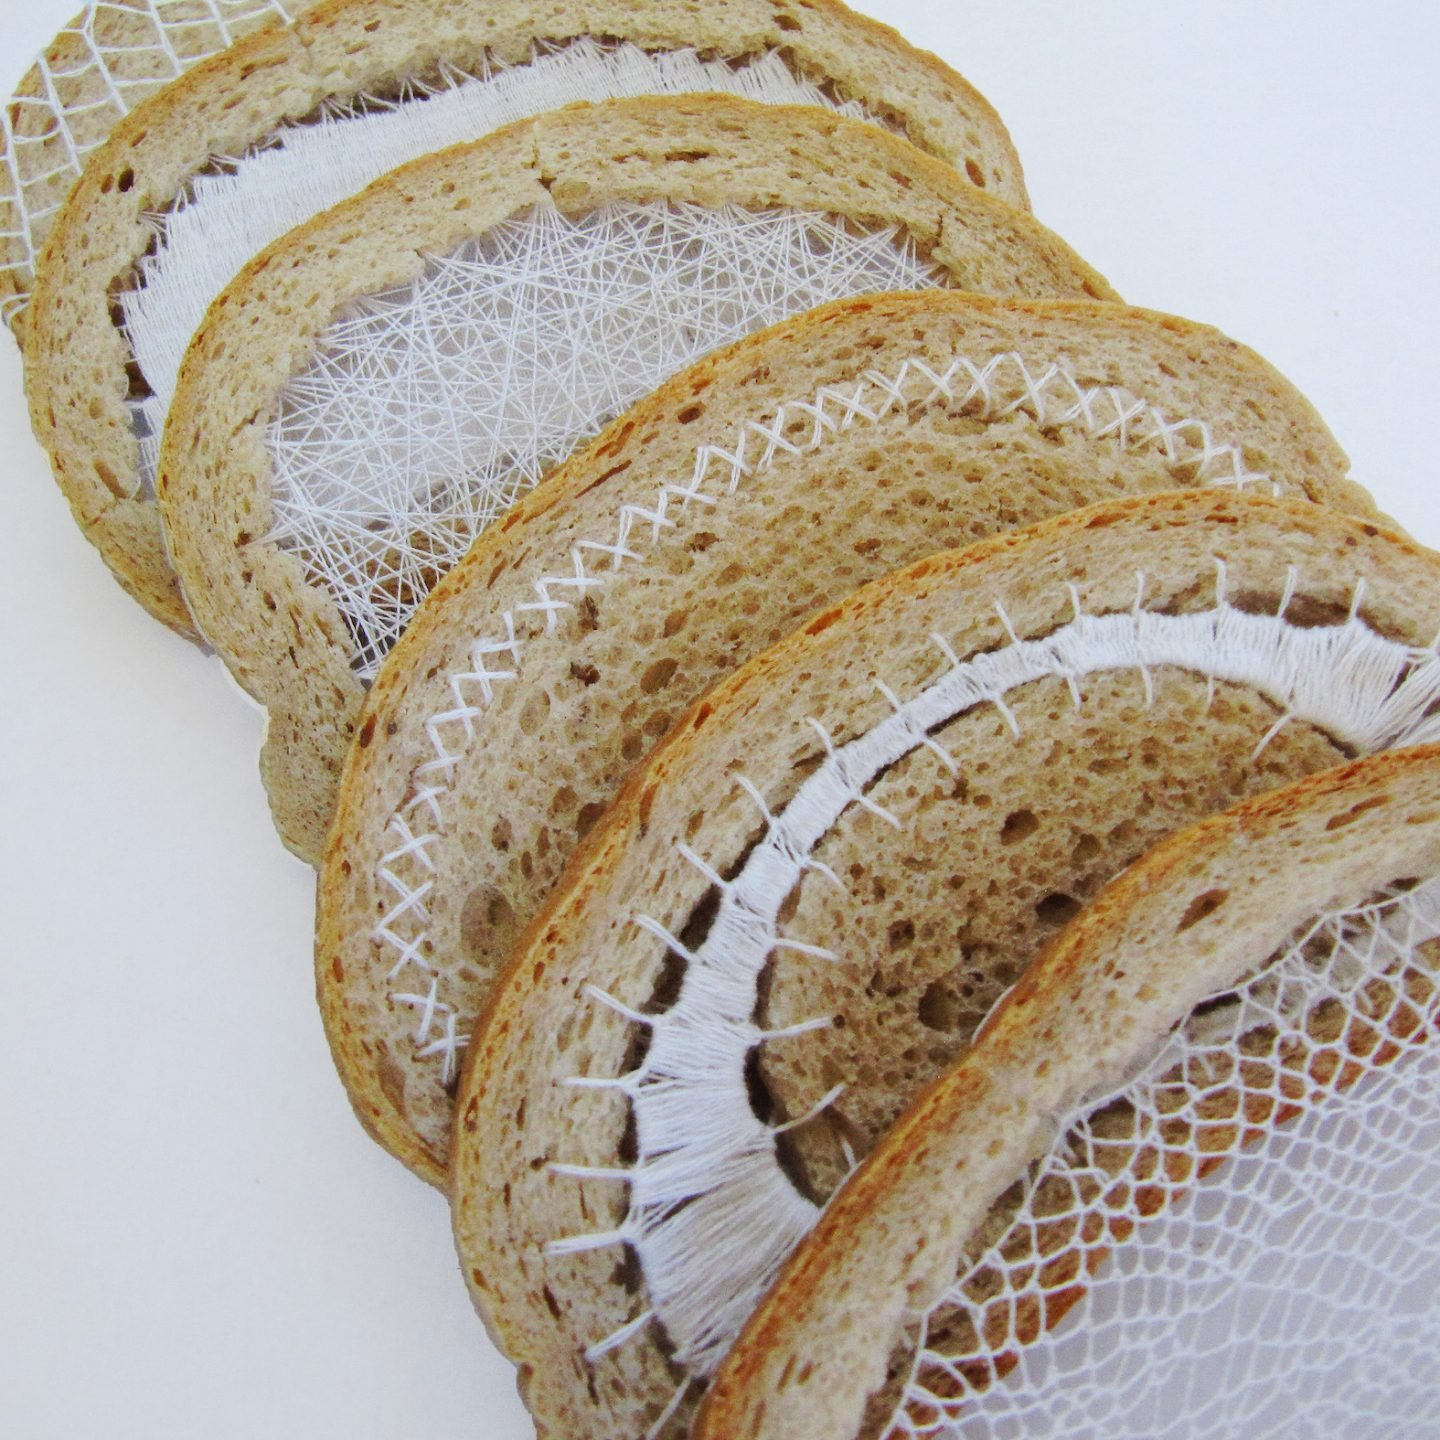 header_art_tereziakrnacova_everydaybread_02